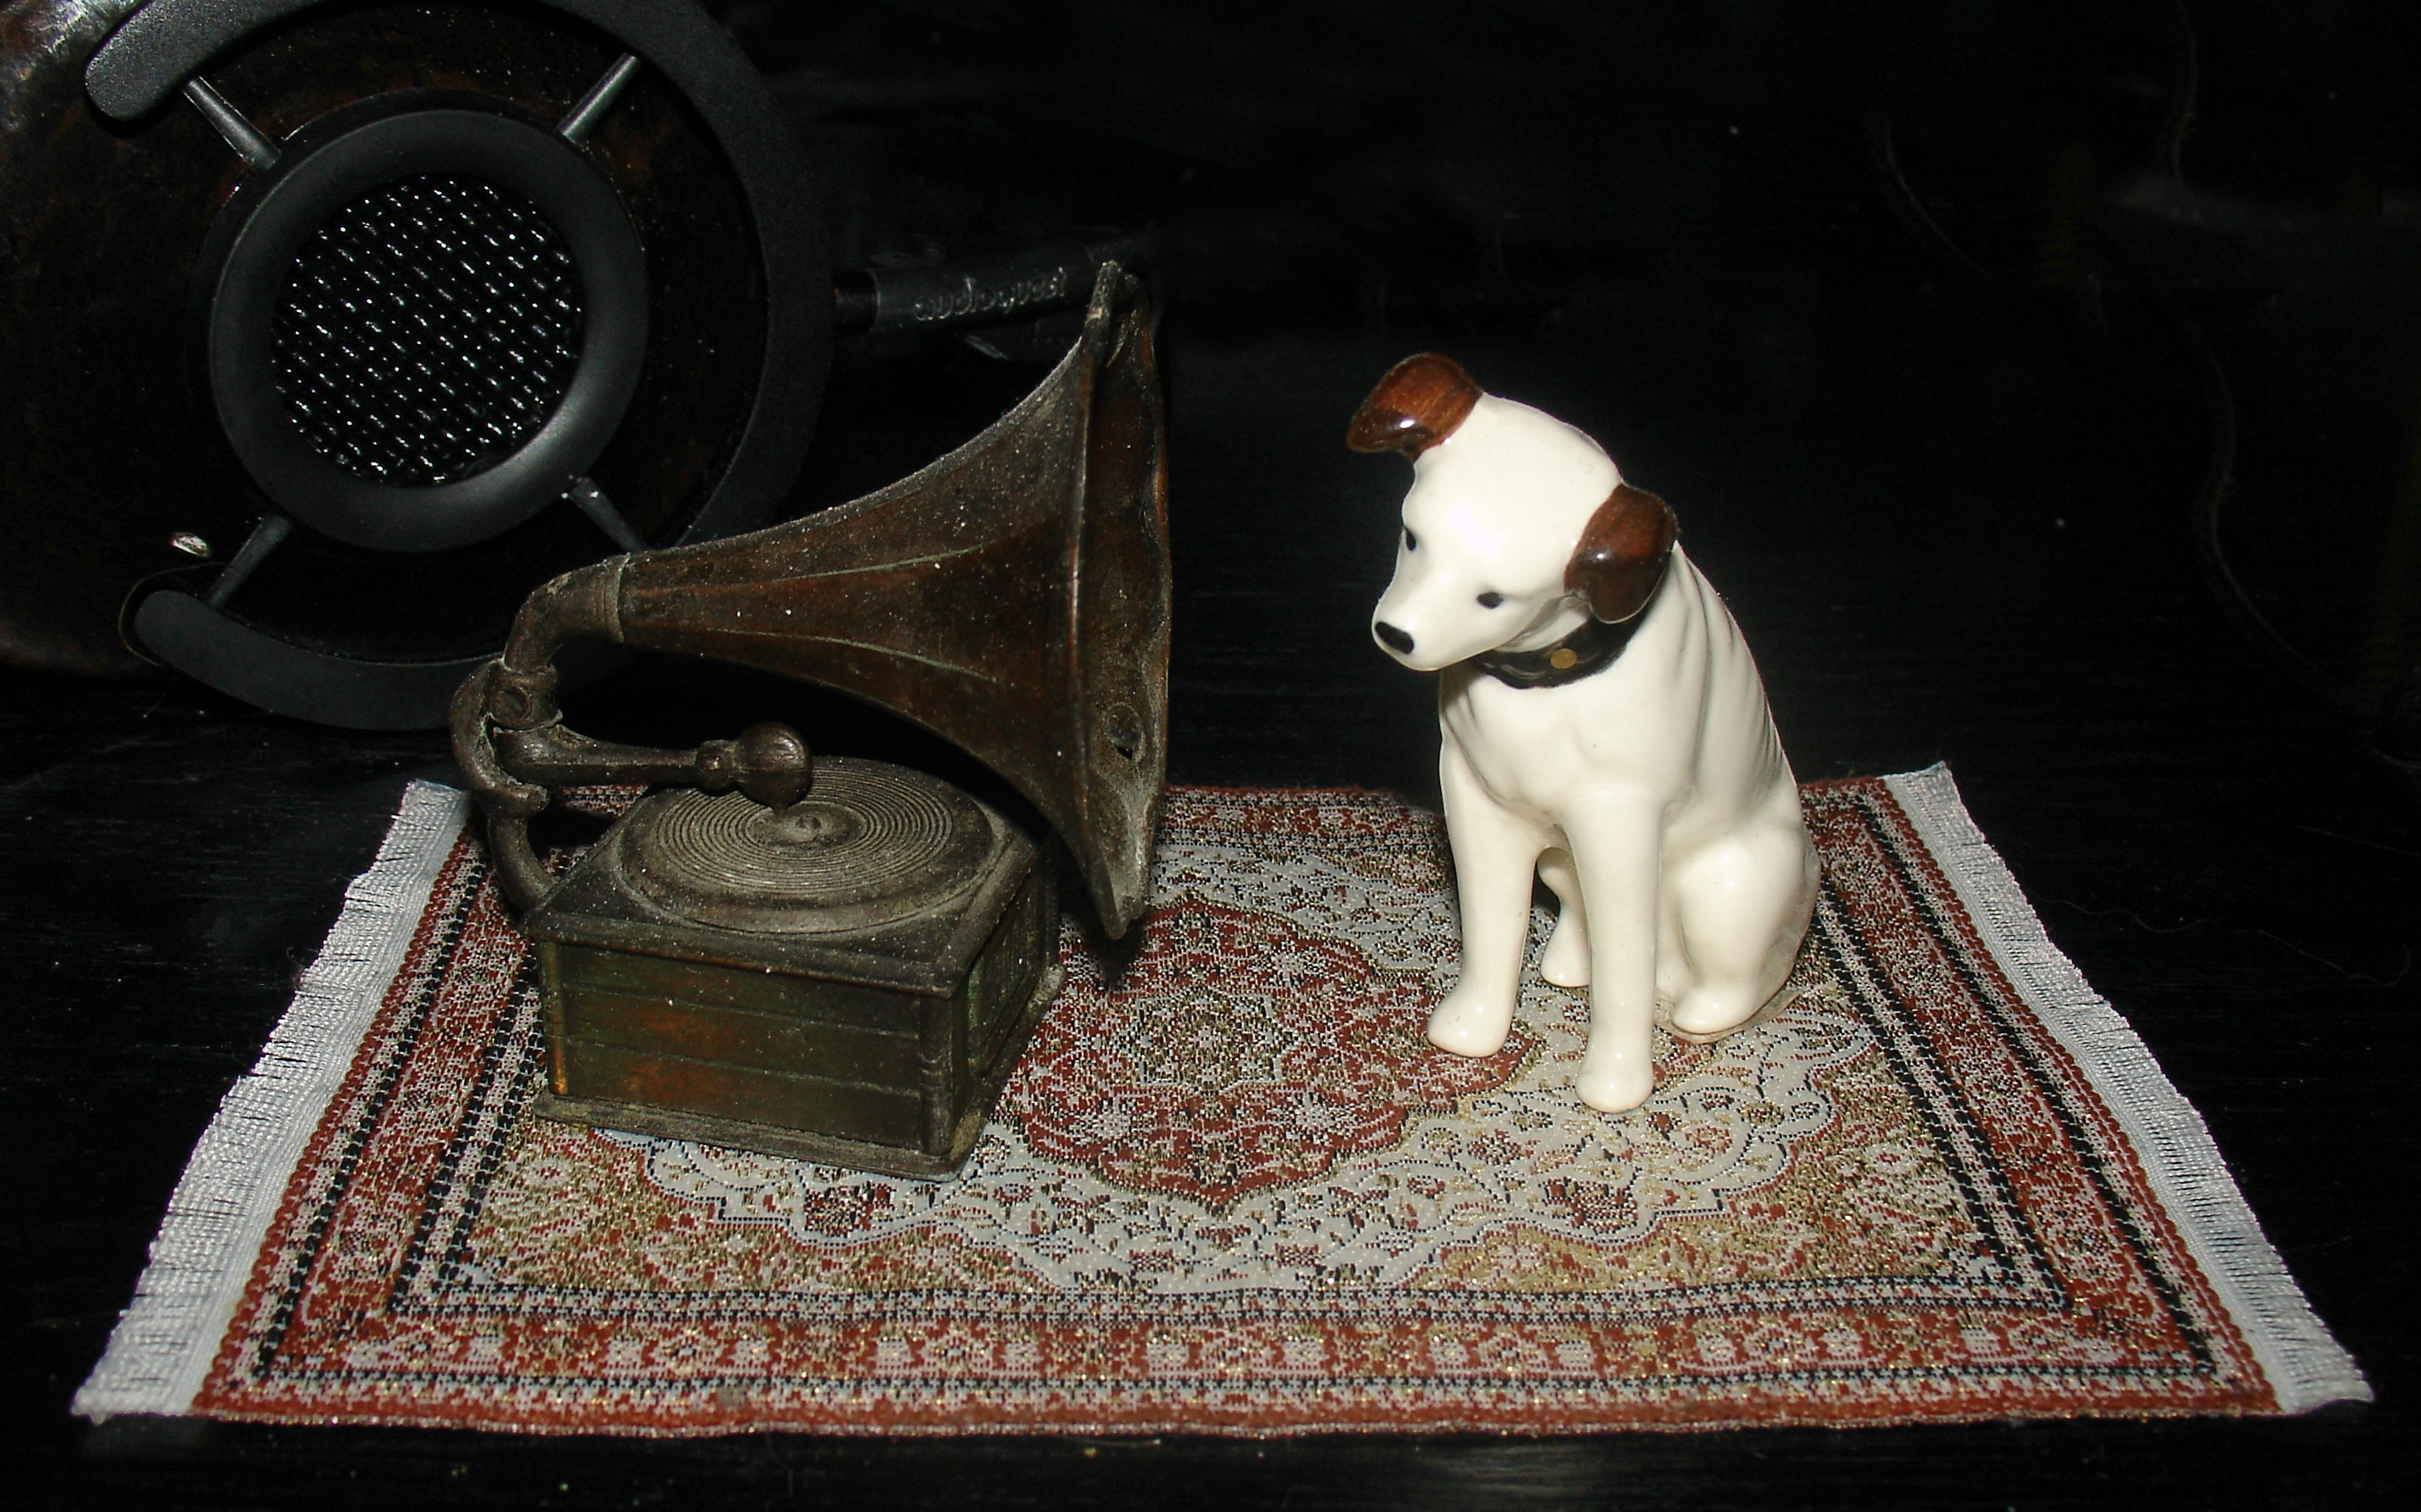 Nipper and Gramaphone Miniature - His Master's Voice 03-20-18